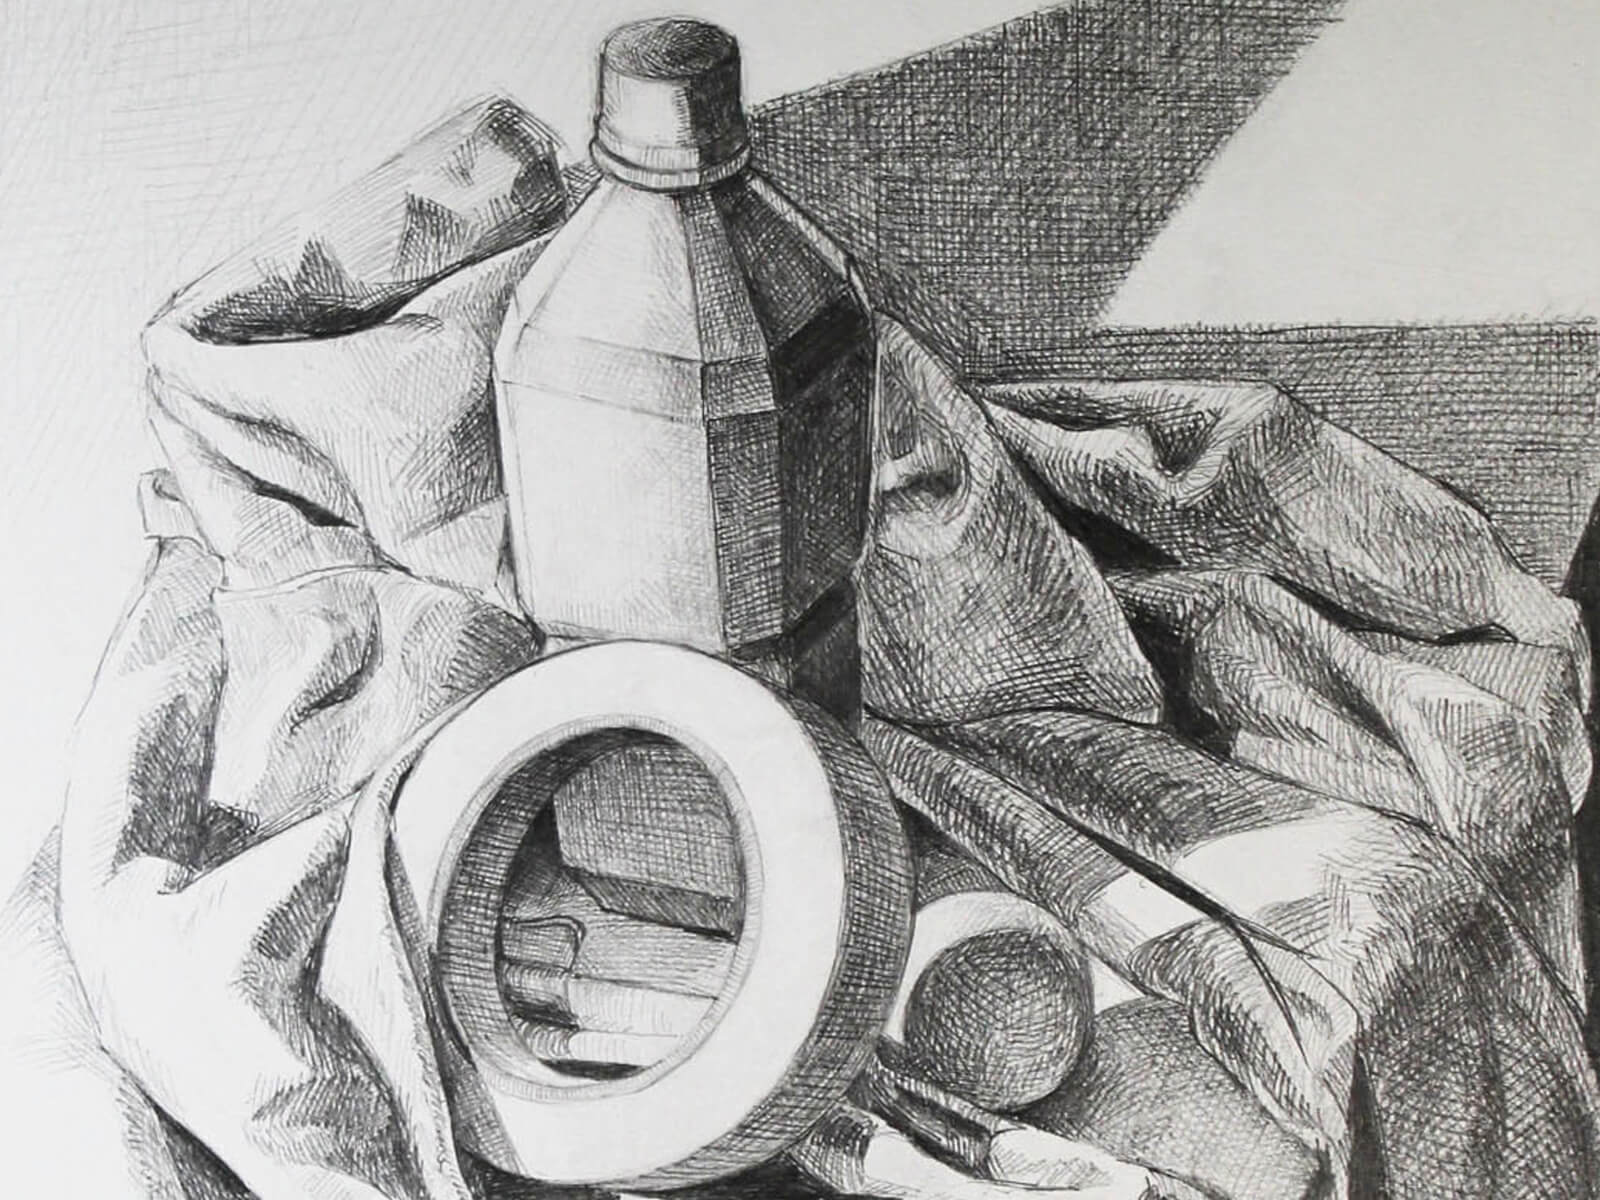 black and white still-life drawing of a bottle and a roll of tape on a draped sheet